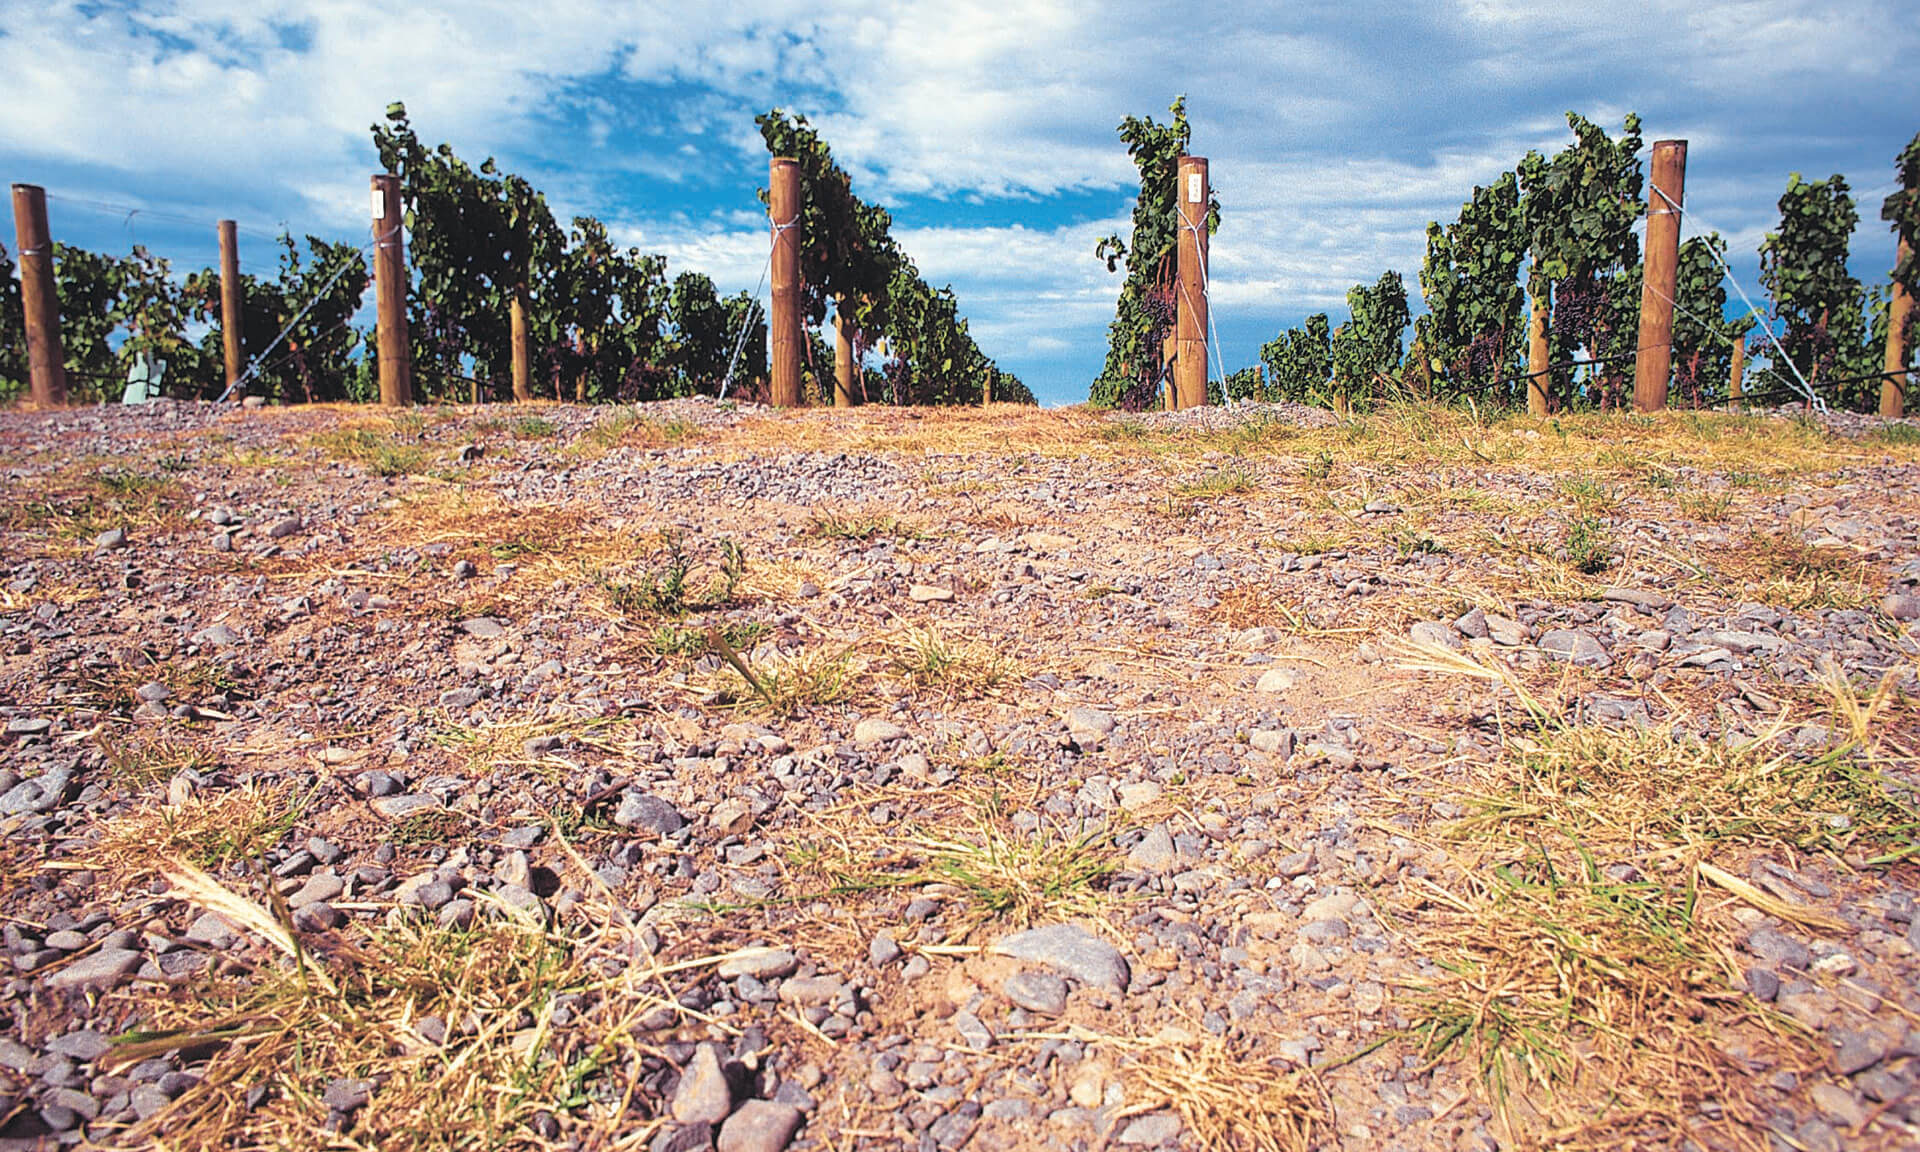 Foreground of soil with rock embedded in it, vines in the background